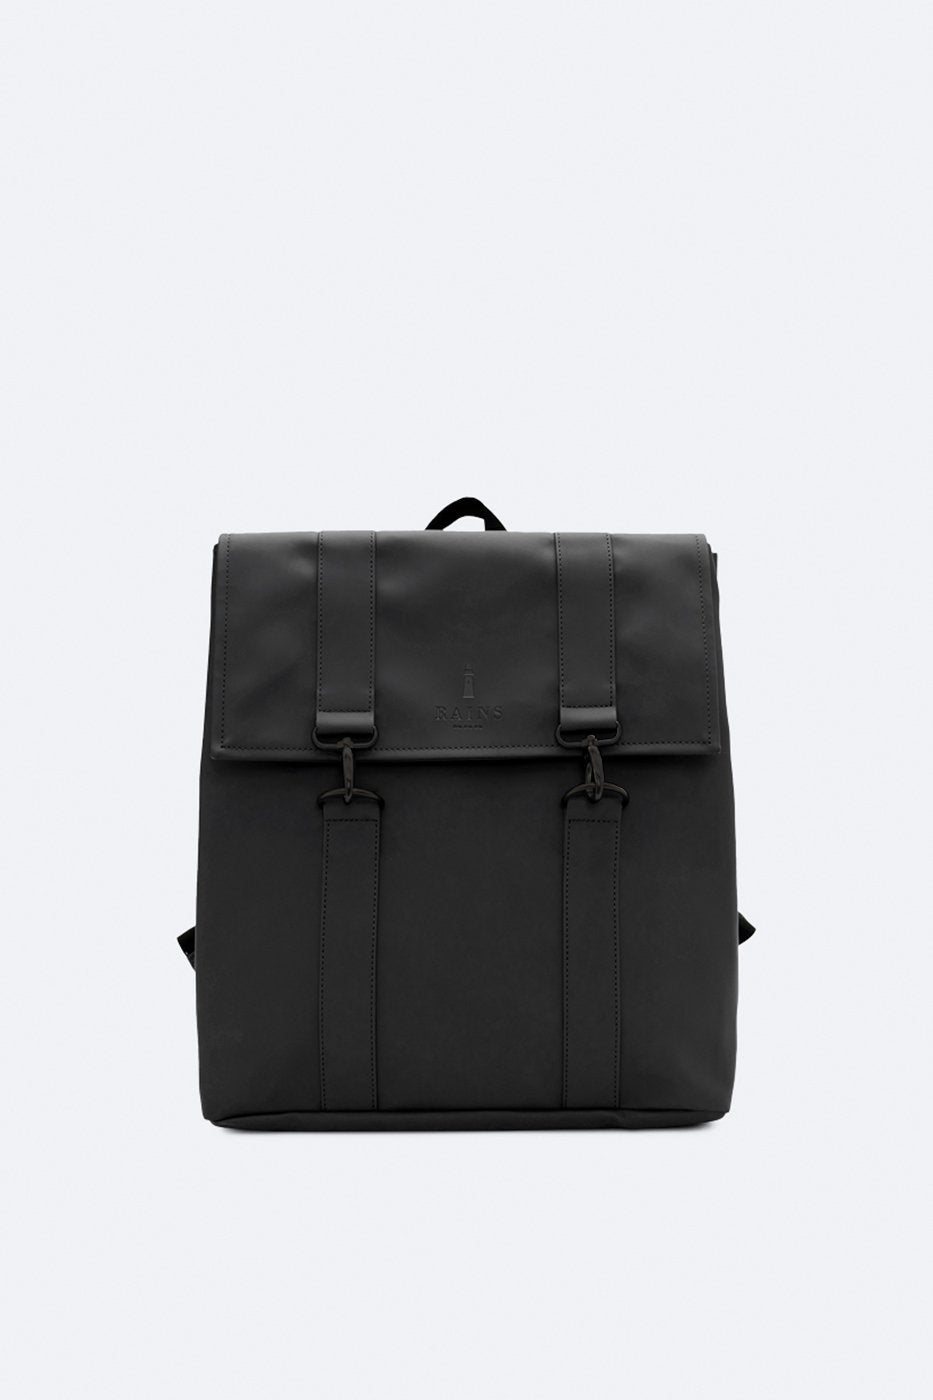 Rains - Msn Bag - Black